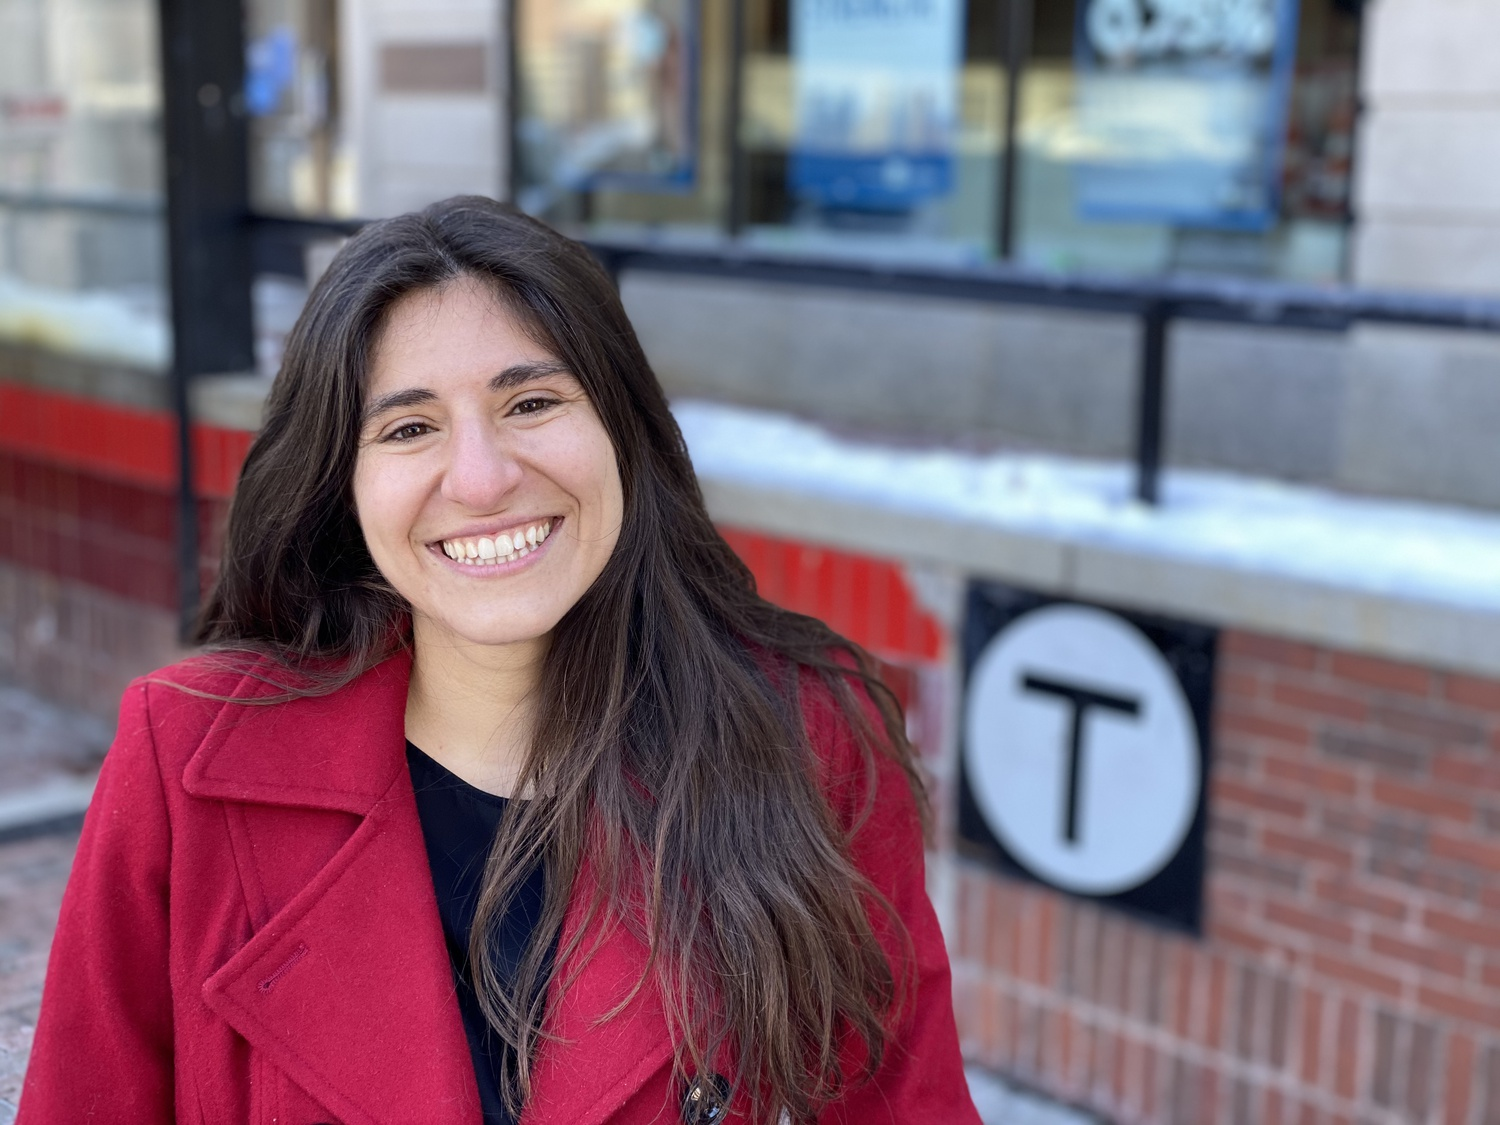 Harvard College and Kennedy School alumna Theodora Skeadas '12 announced a run for Cambridge city council last month. The Harvard graduate has experience working on a local campaign and advocating for local businesses.